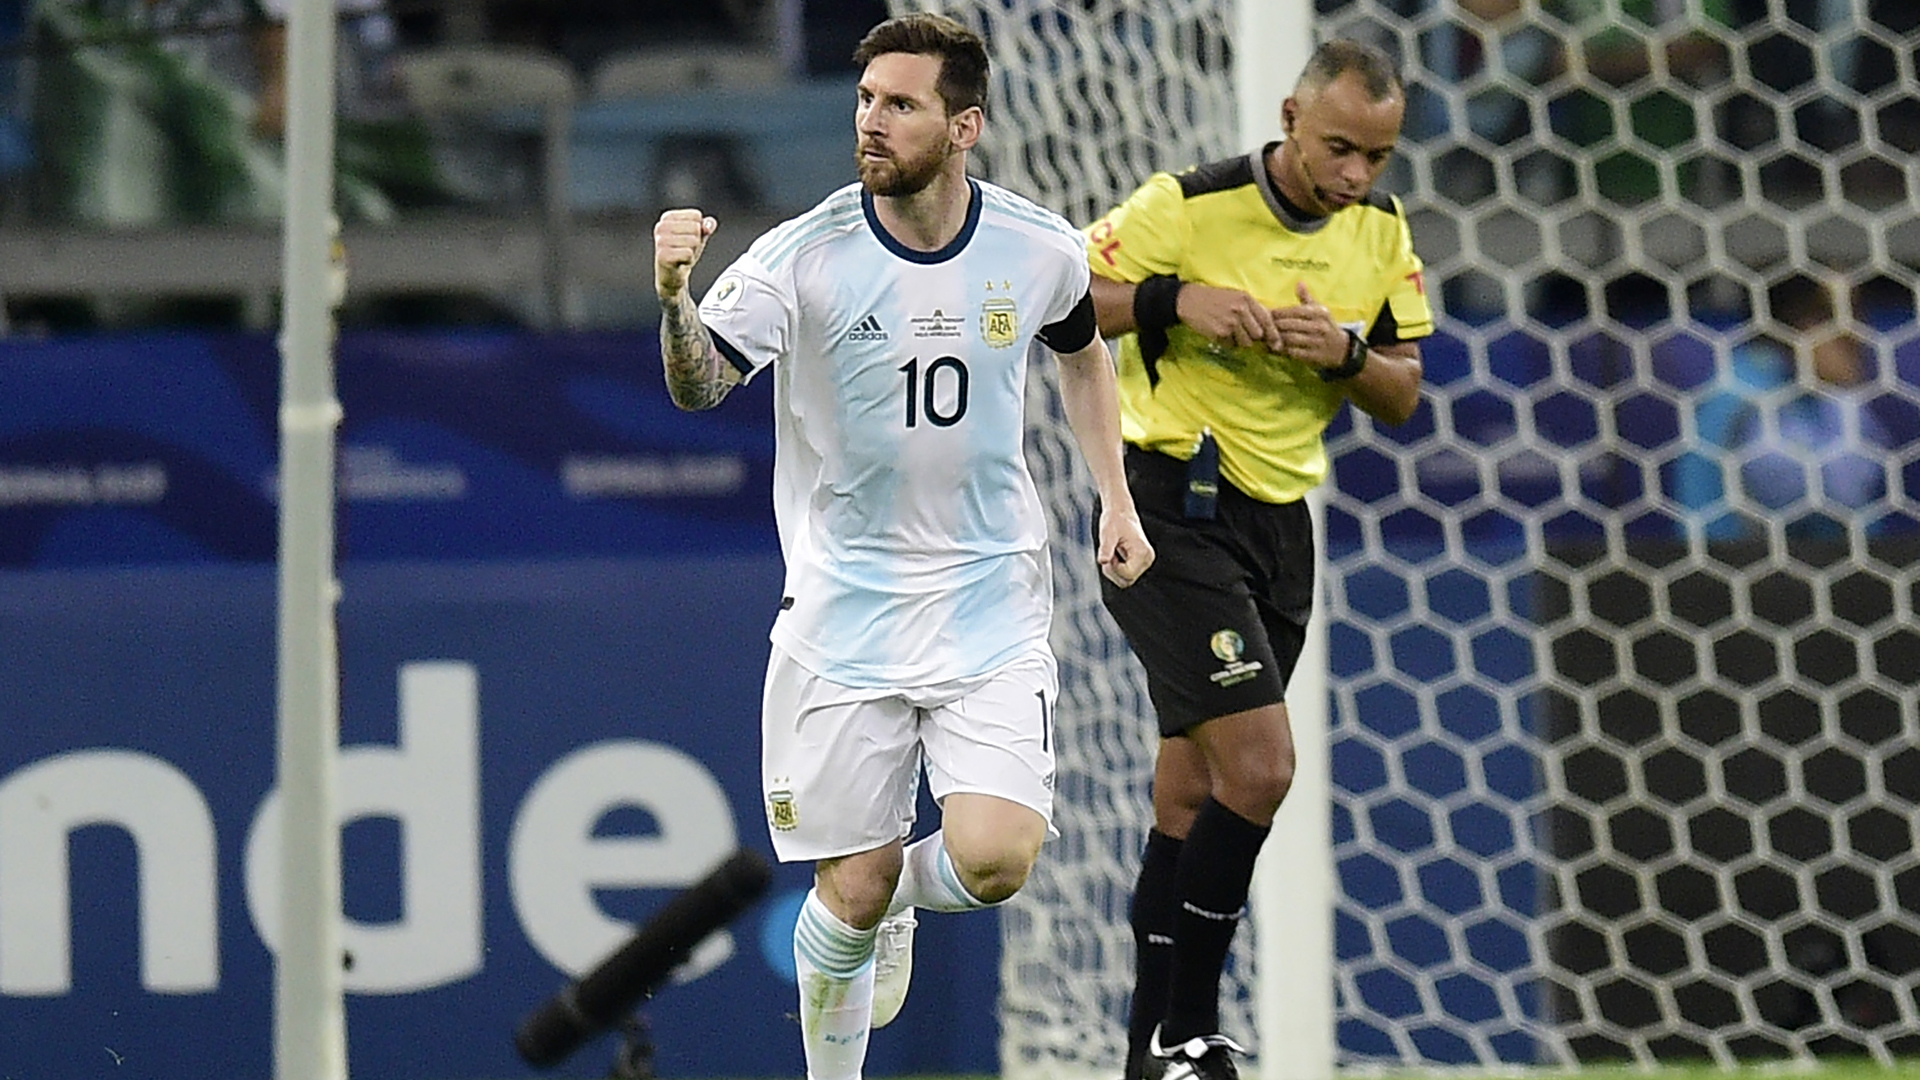 Messi is the greatest player of all-time – Silva